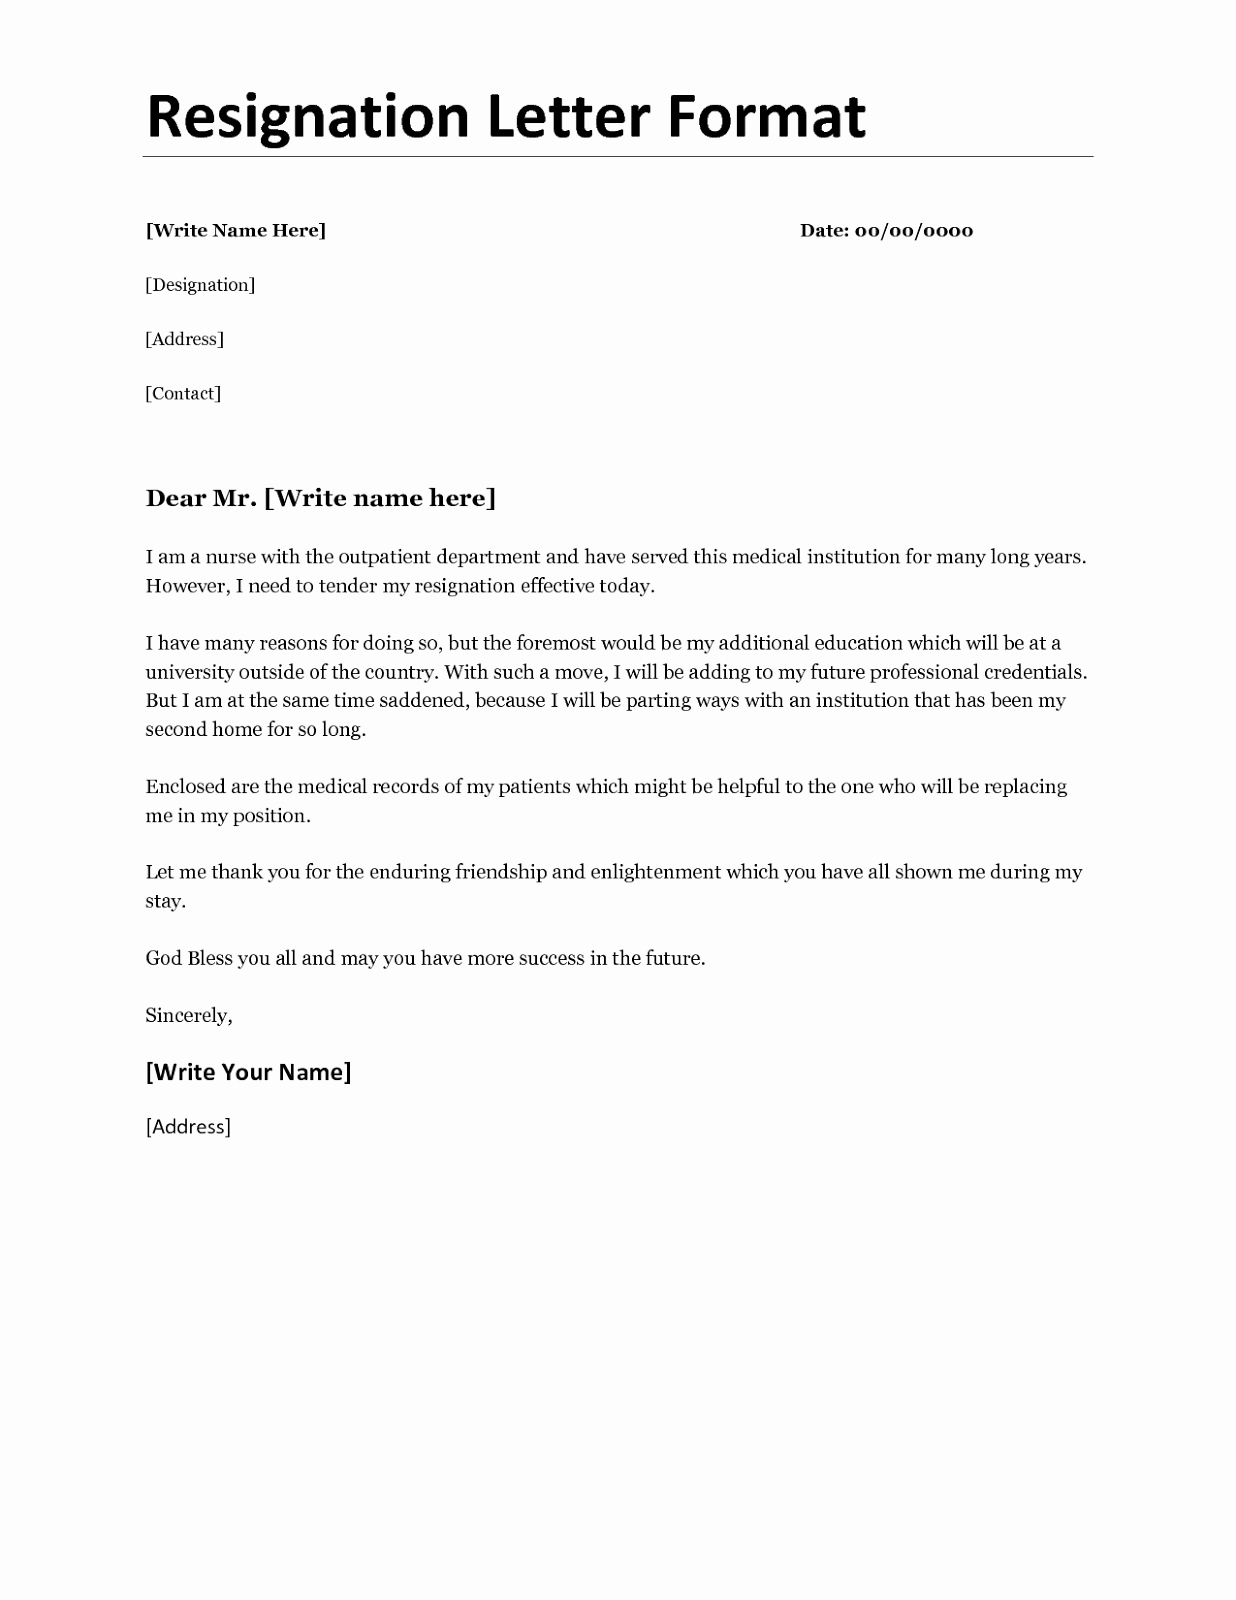 Resignation Letter Personal Reasons Fresh Resignation Letter format for Personal Reason Document Blogs